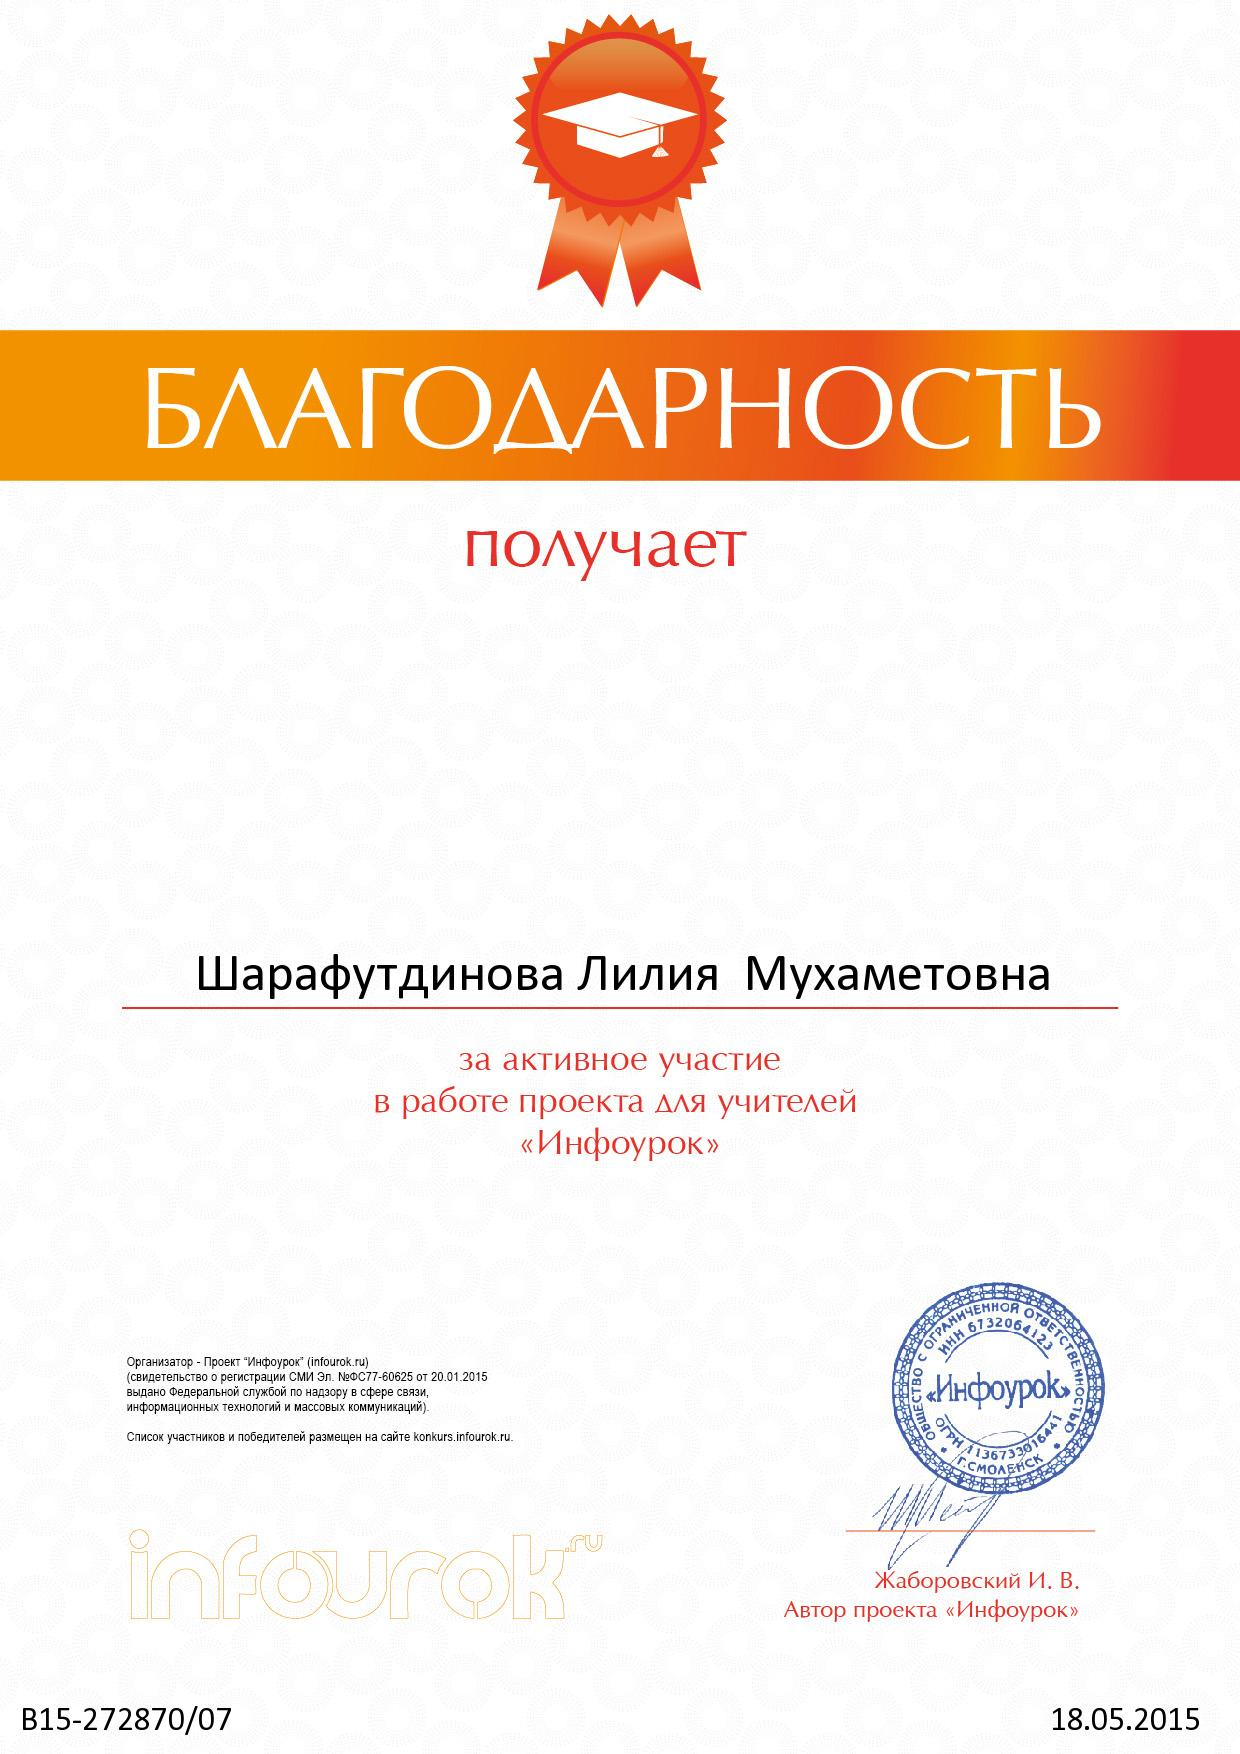 H:\Школа\инфоурок 2а\format_A5_document_856158.jpg